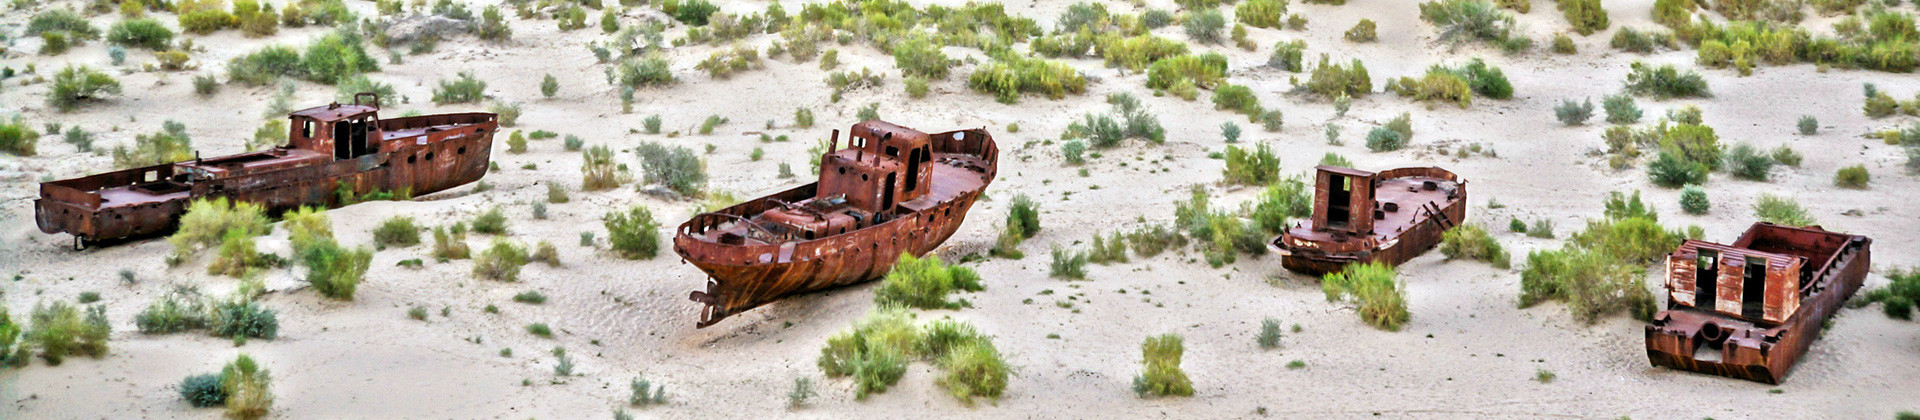 Aral Sea Tour 2 (Premium) - 1